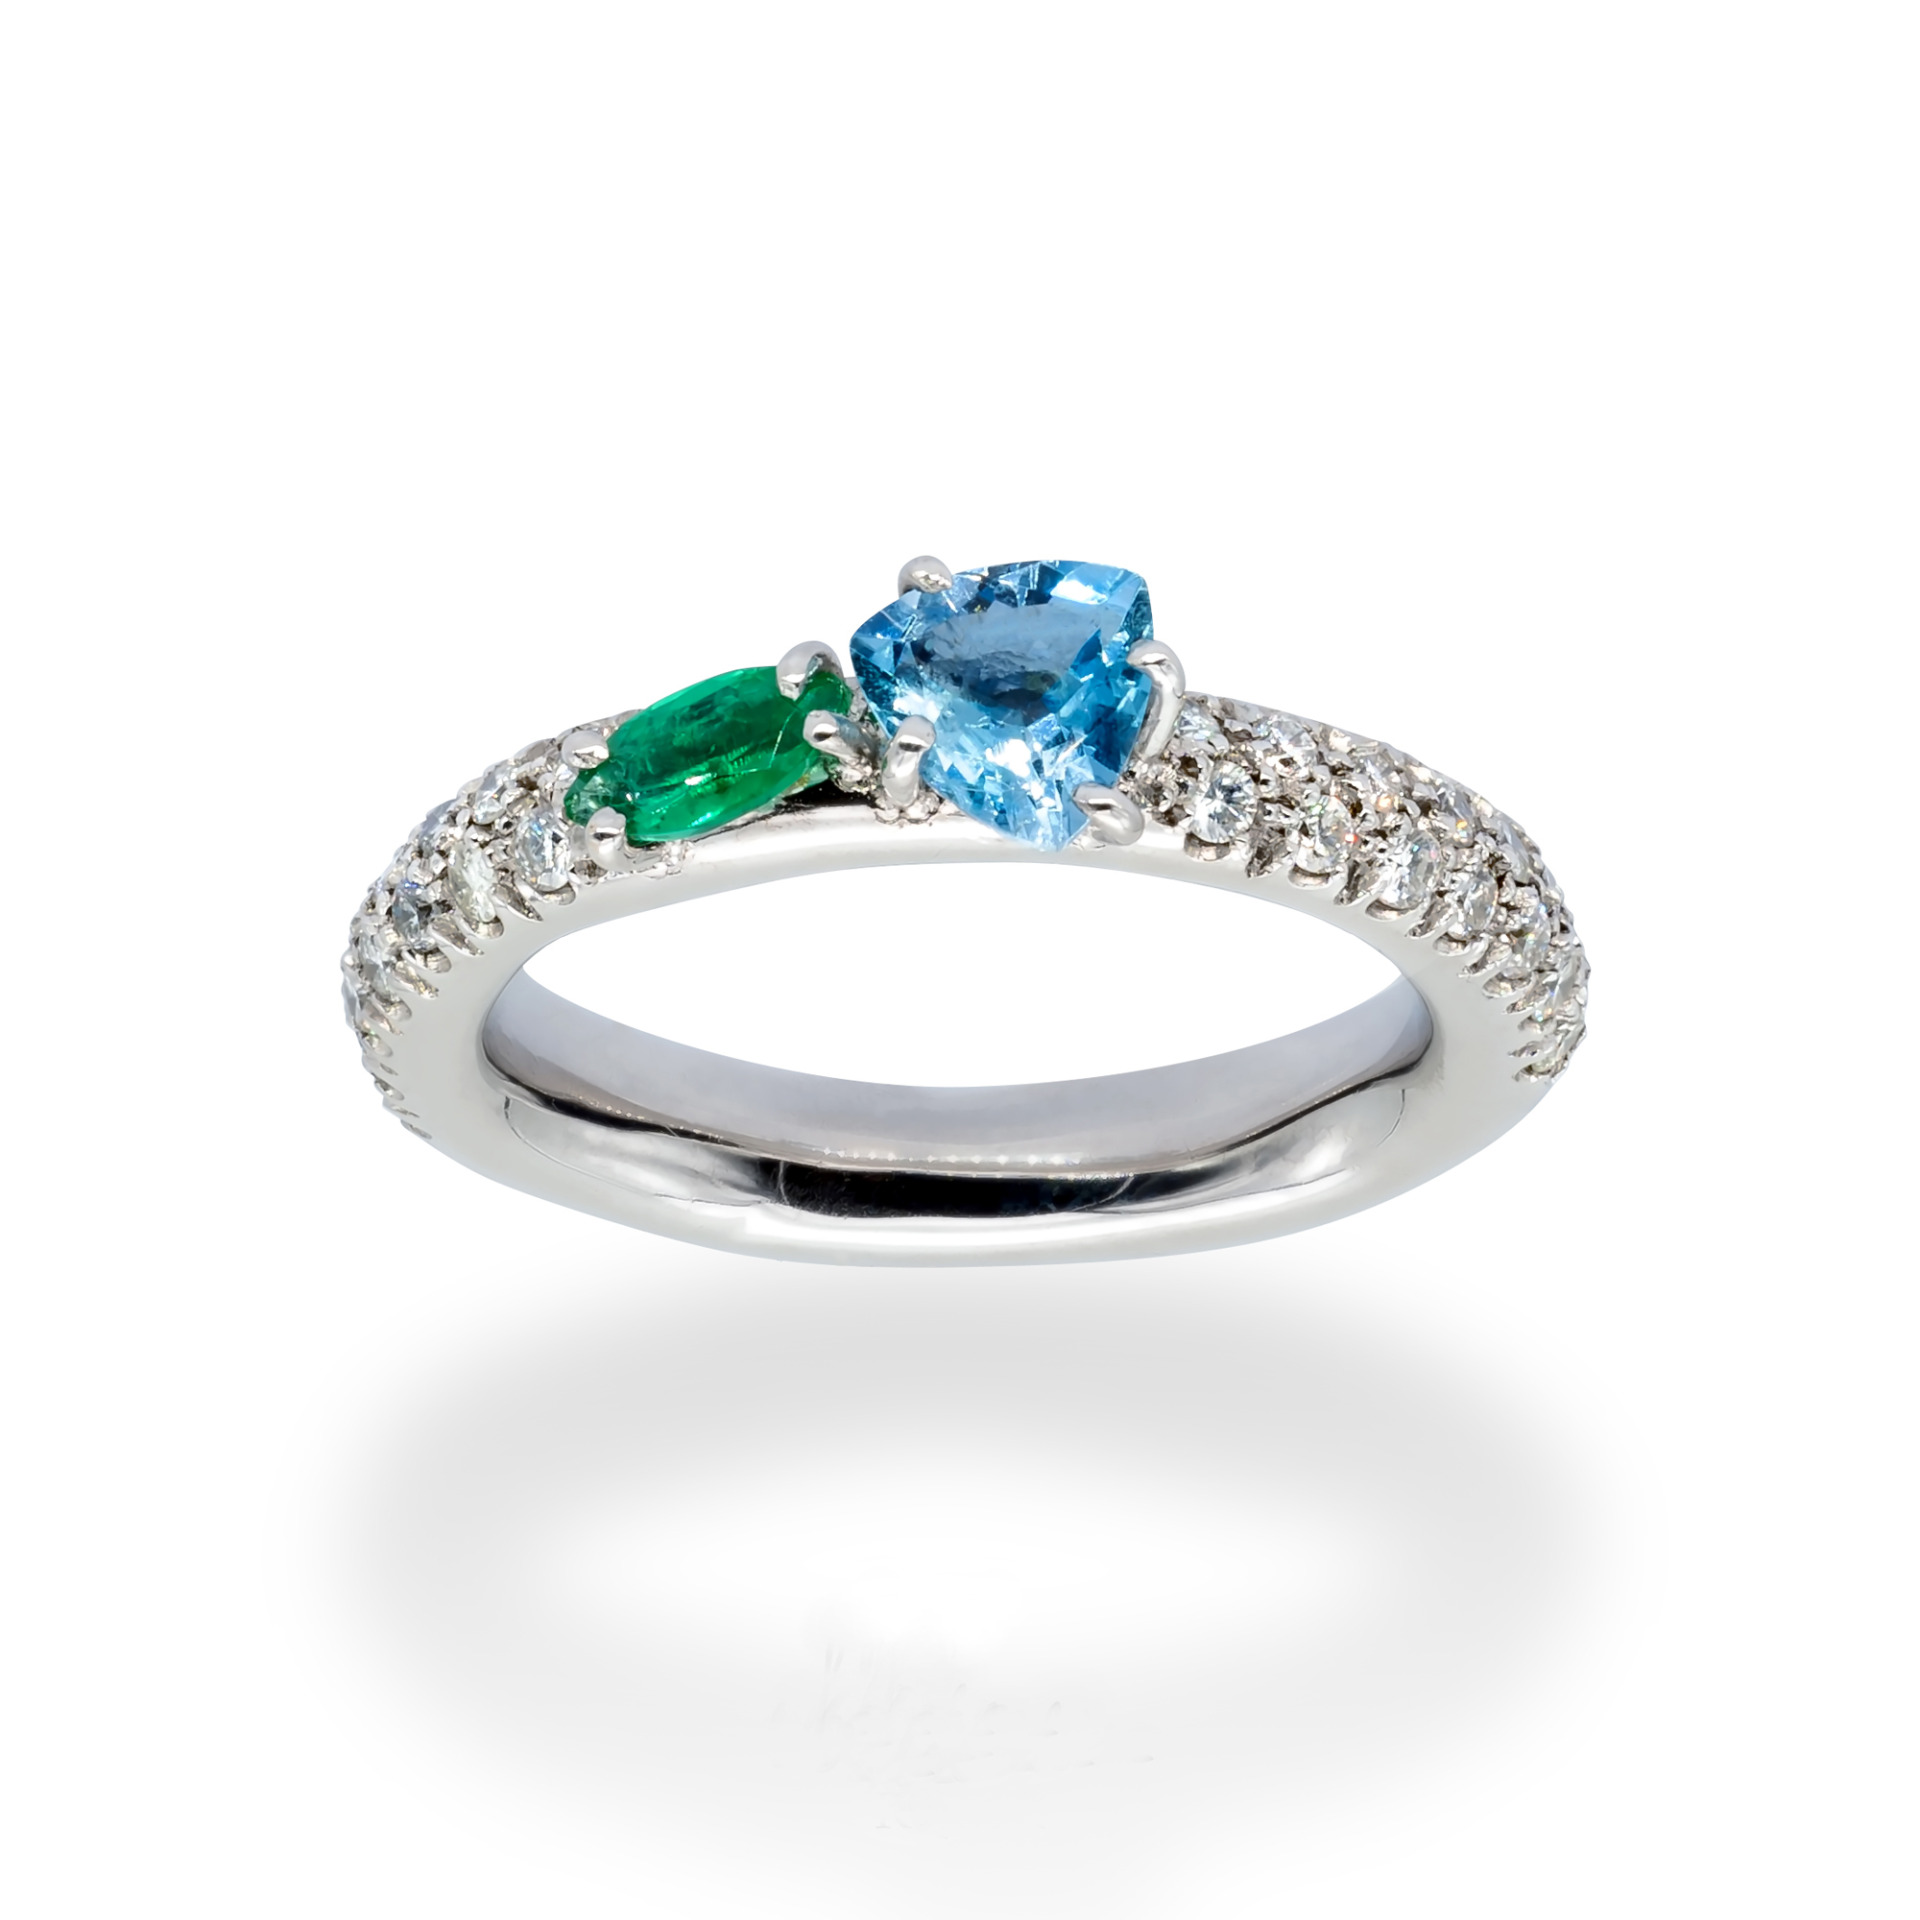 d'Avossa Ring in 18kt white gold with Aquamarine, Emerald and White Diamonds